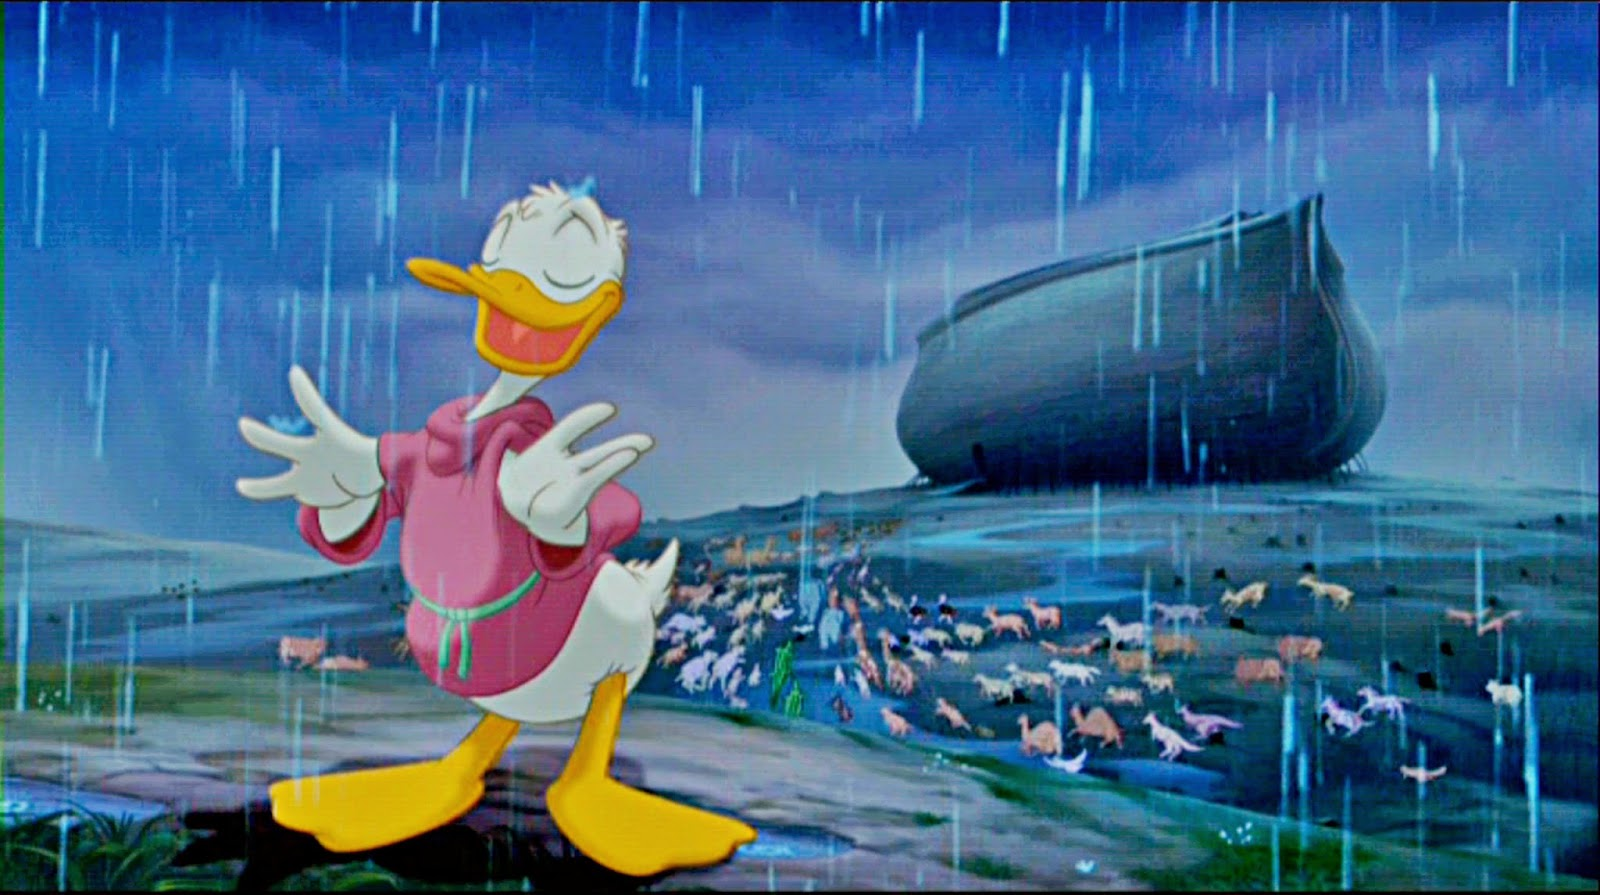 Donald Duck supervises getting the animals aboard Noah's Ark in the Pomp and Circumstances segment in Fantasia 2000 (1999)